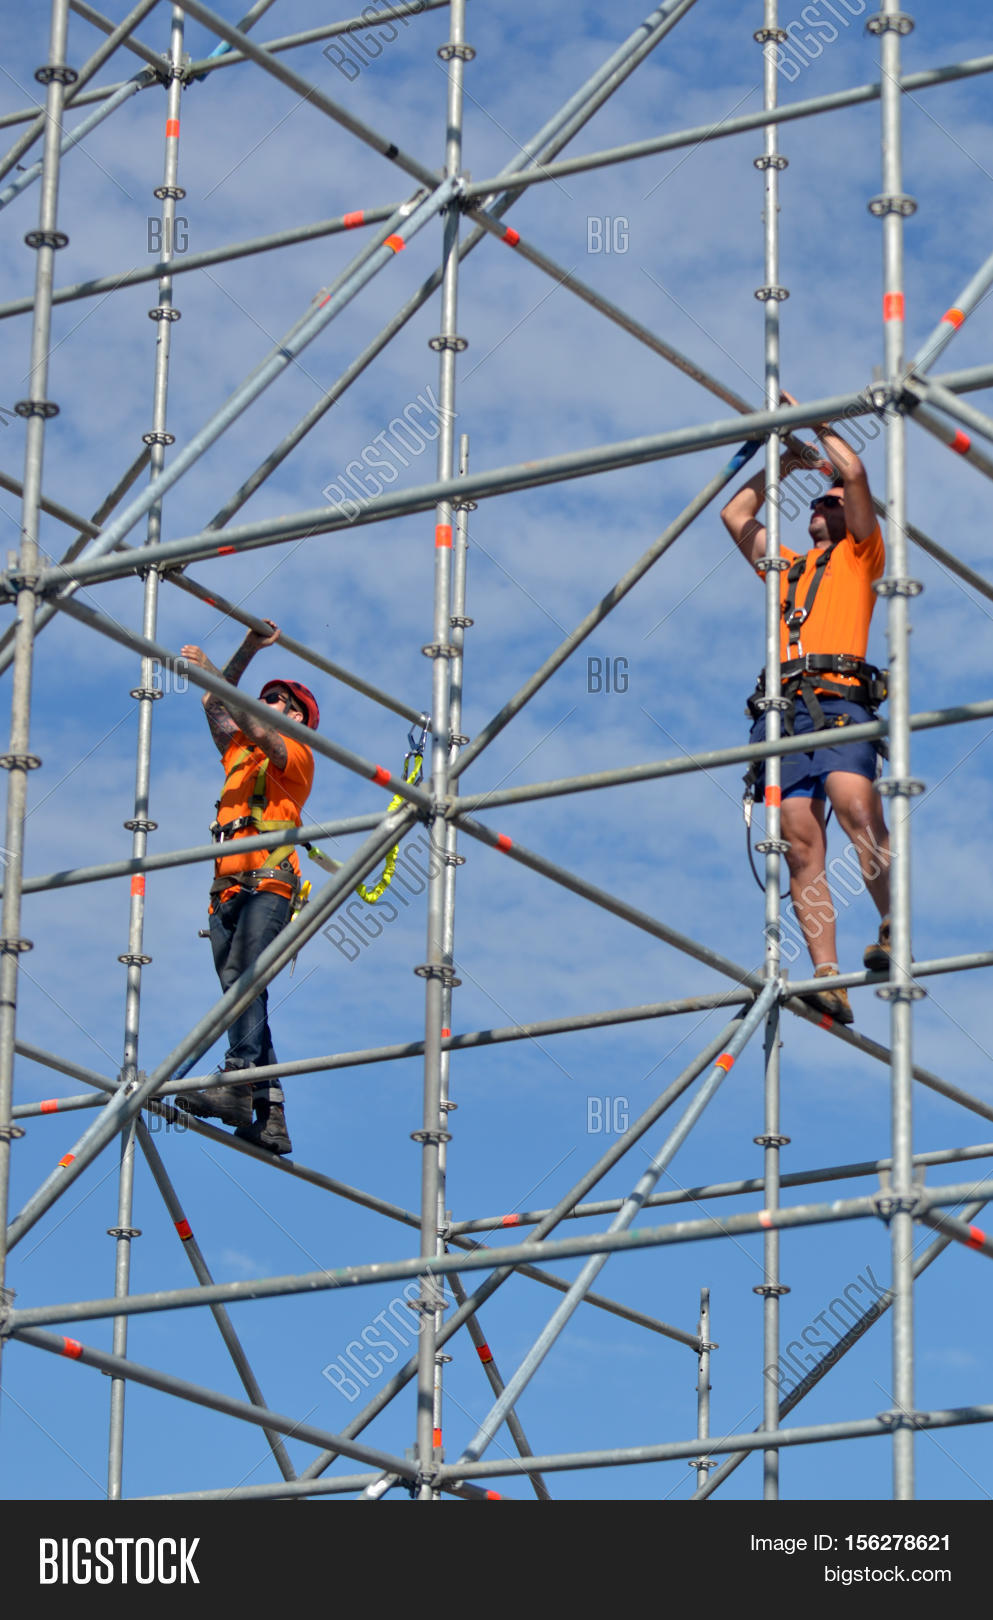 sydney oct scaffold builders at work osha statistics sydney oct 19 2016 scaffold builders at work osha statistics report that about